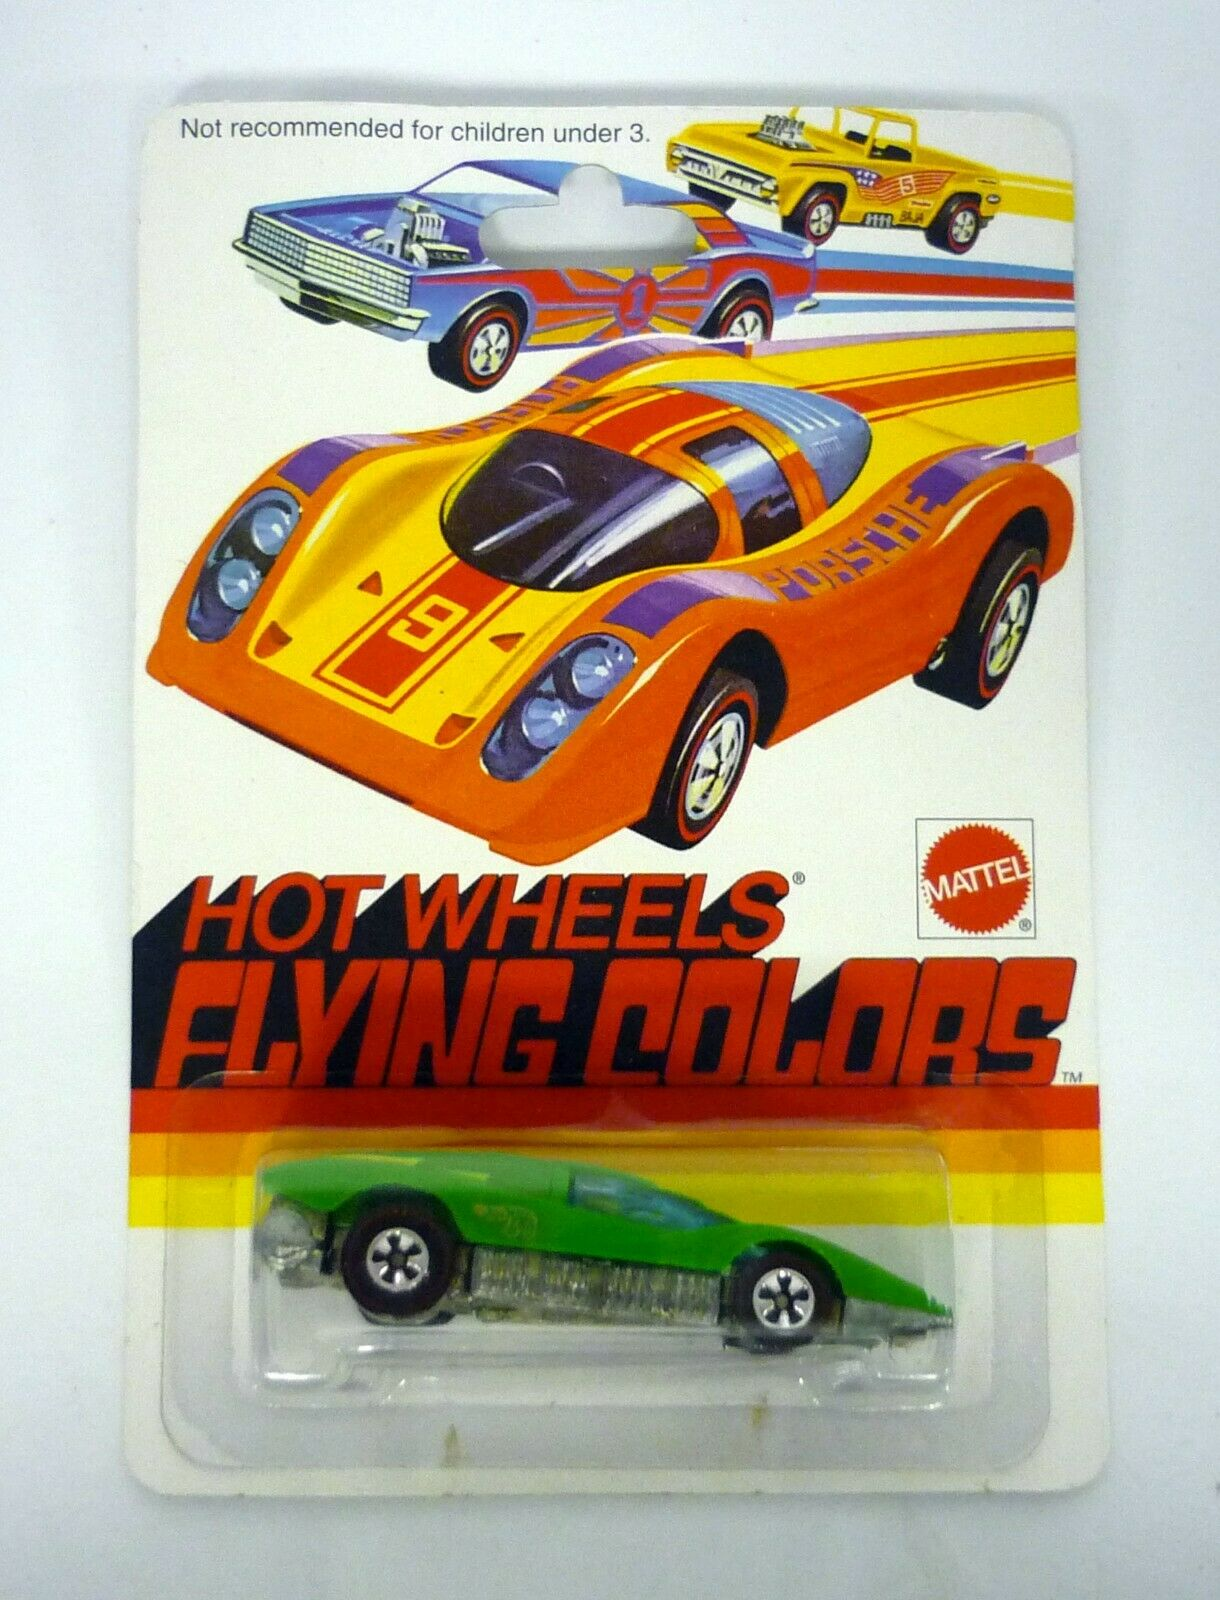 HOT WHEELS 1975 LARGE CHARGE Flying colors Die-Cast Car MOC COMPLETE 1997